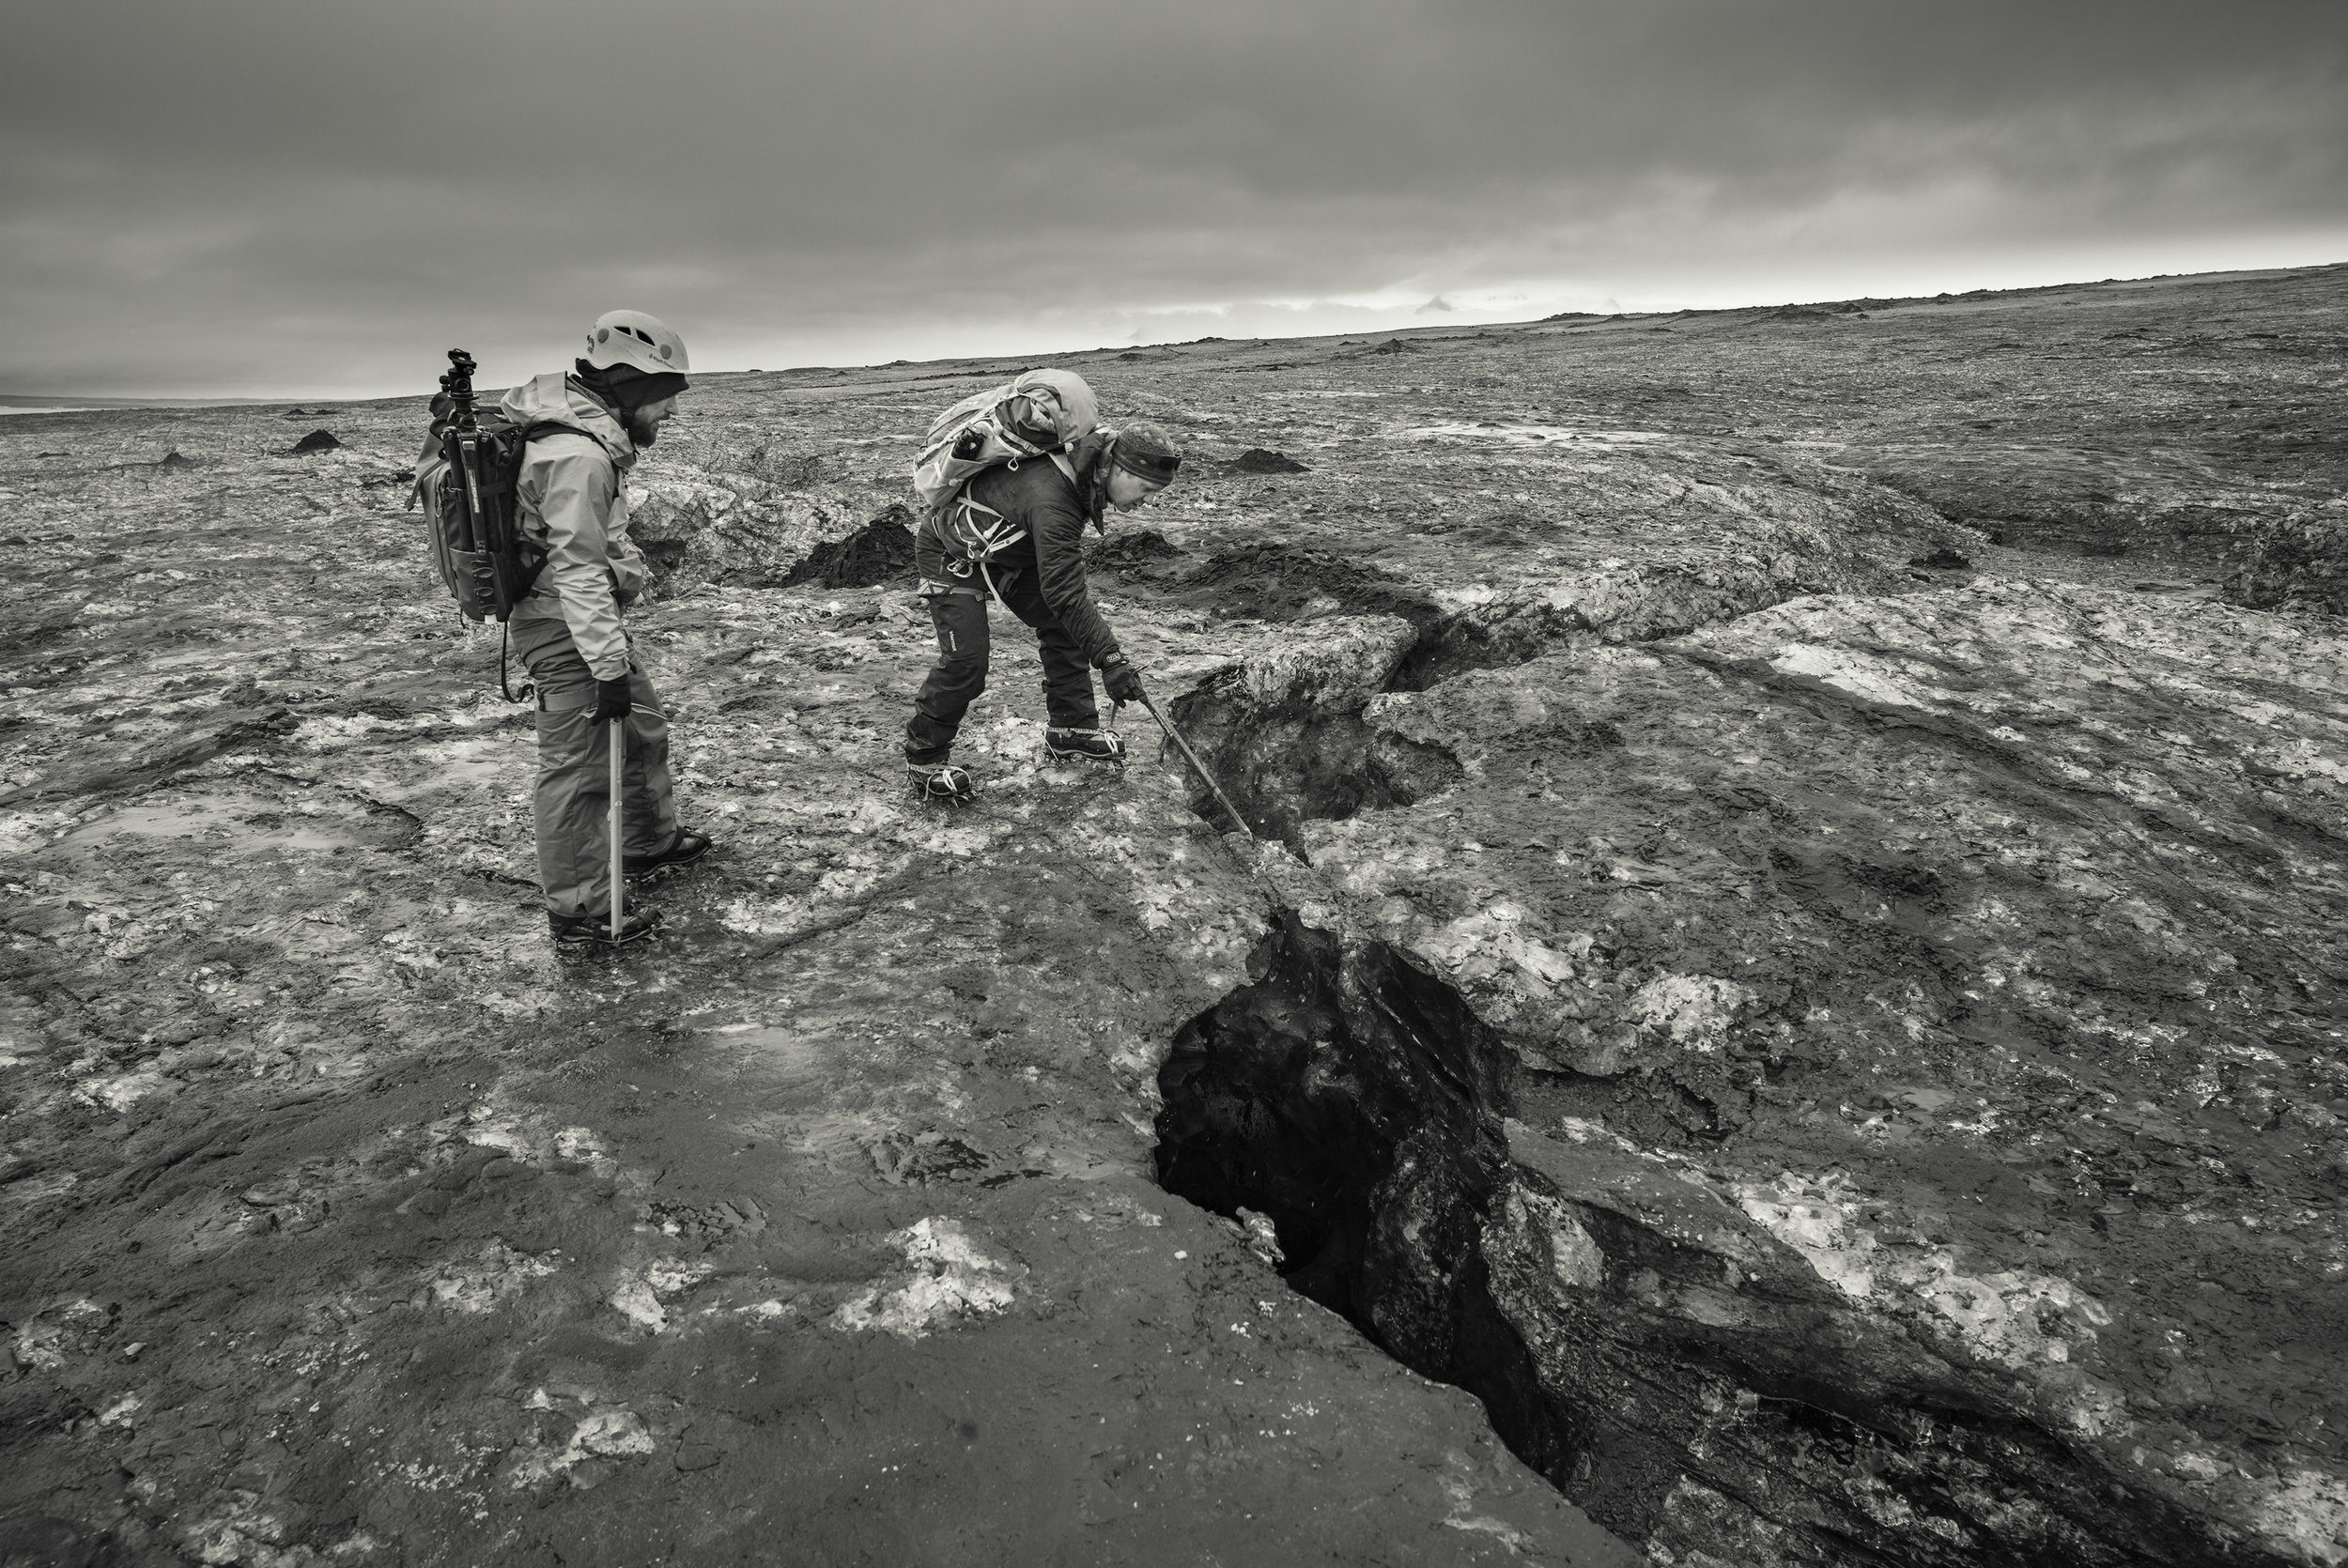 A large fissure cut deep into the hard packed ice. You could hear water running through this one.